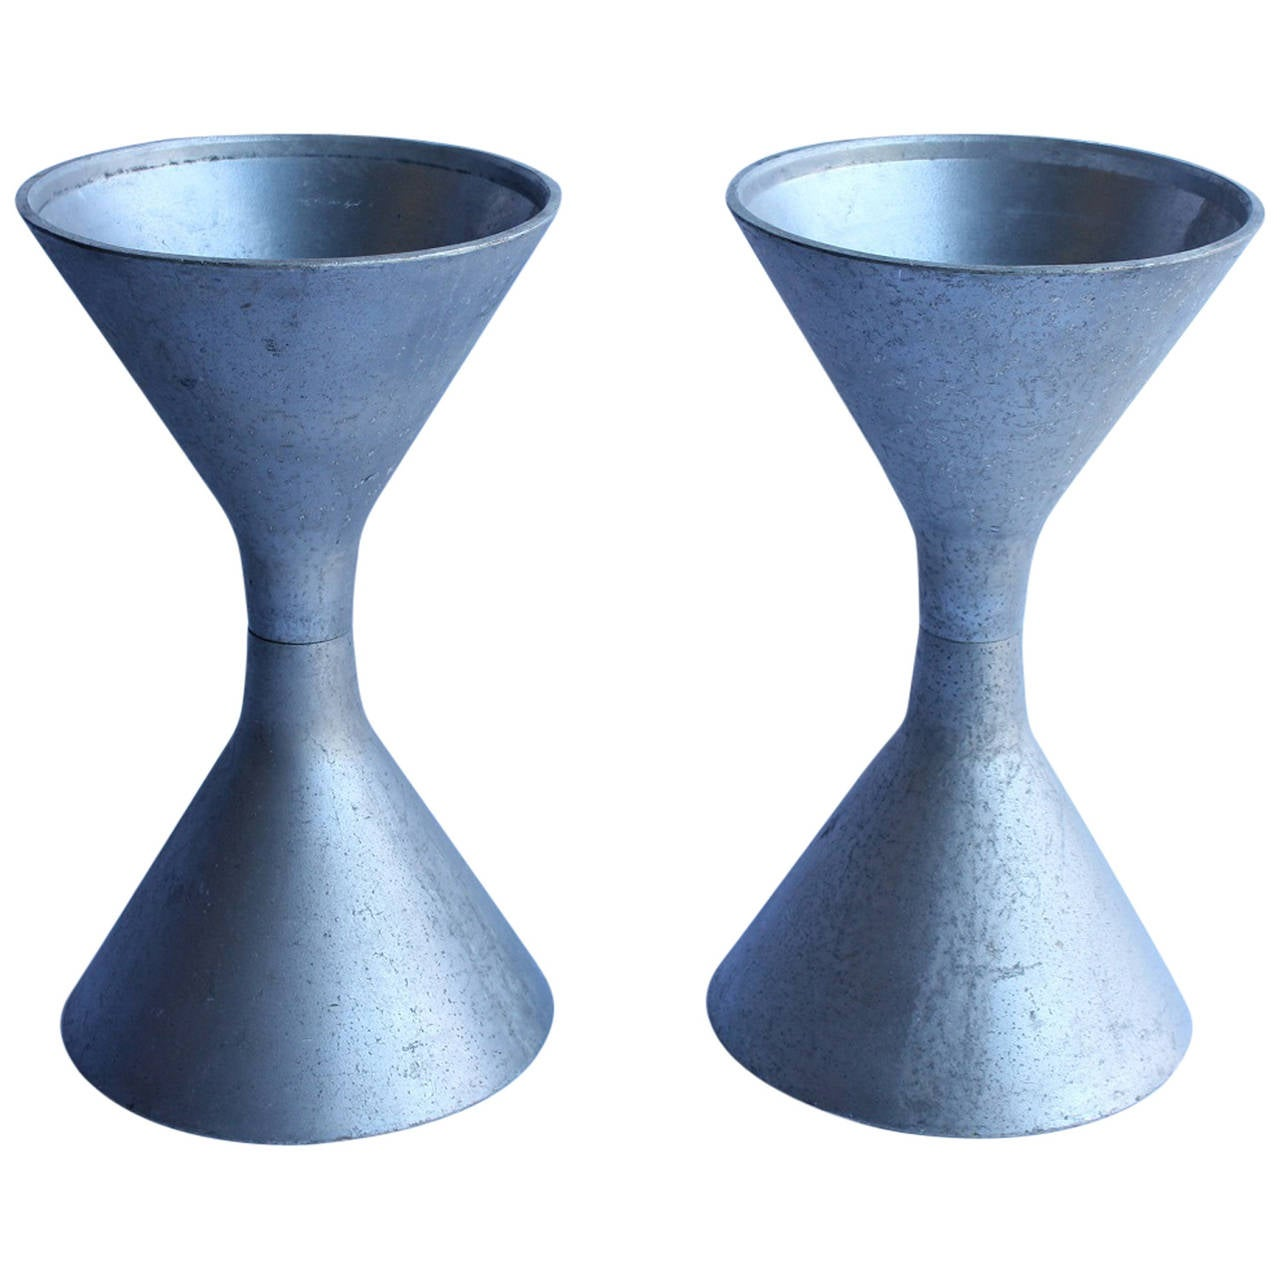 1950s French Willy Guhl's Style Hourglass Planters